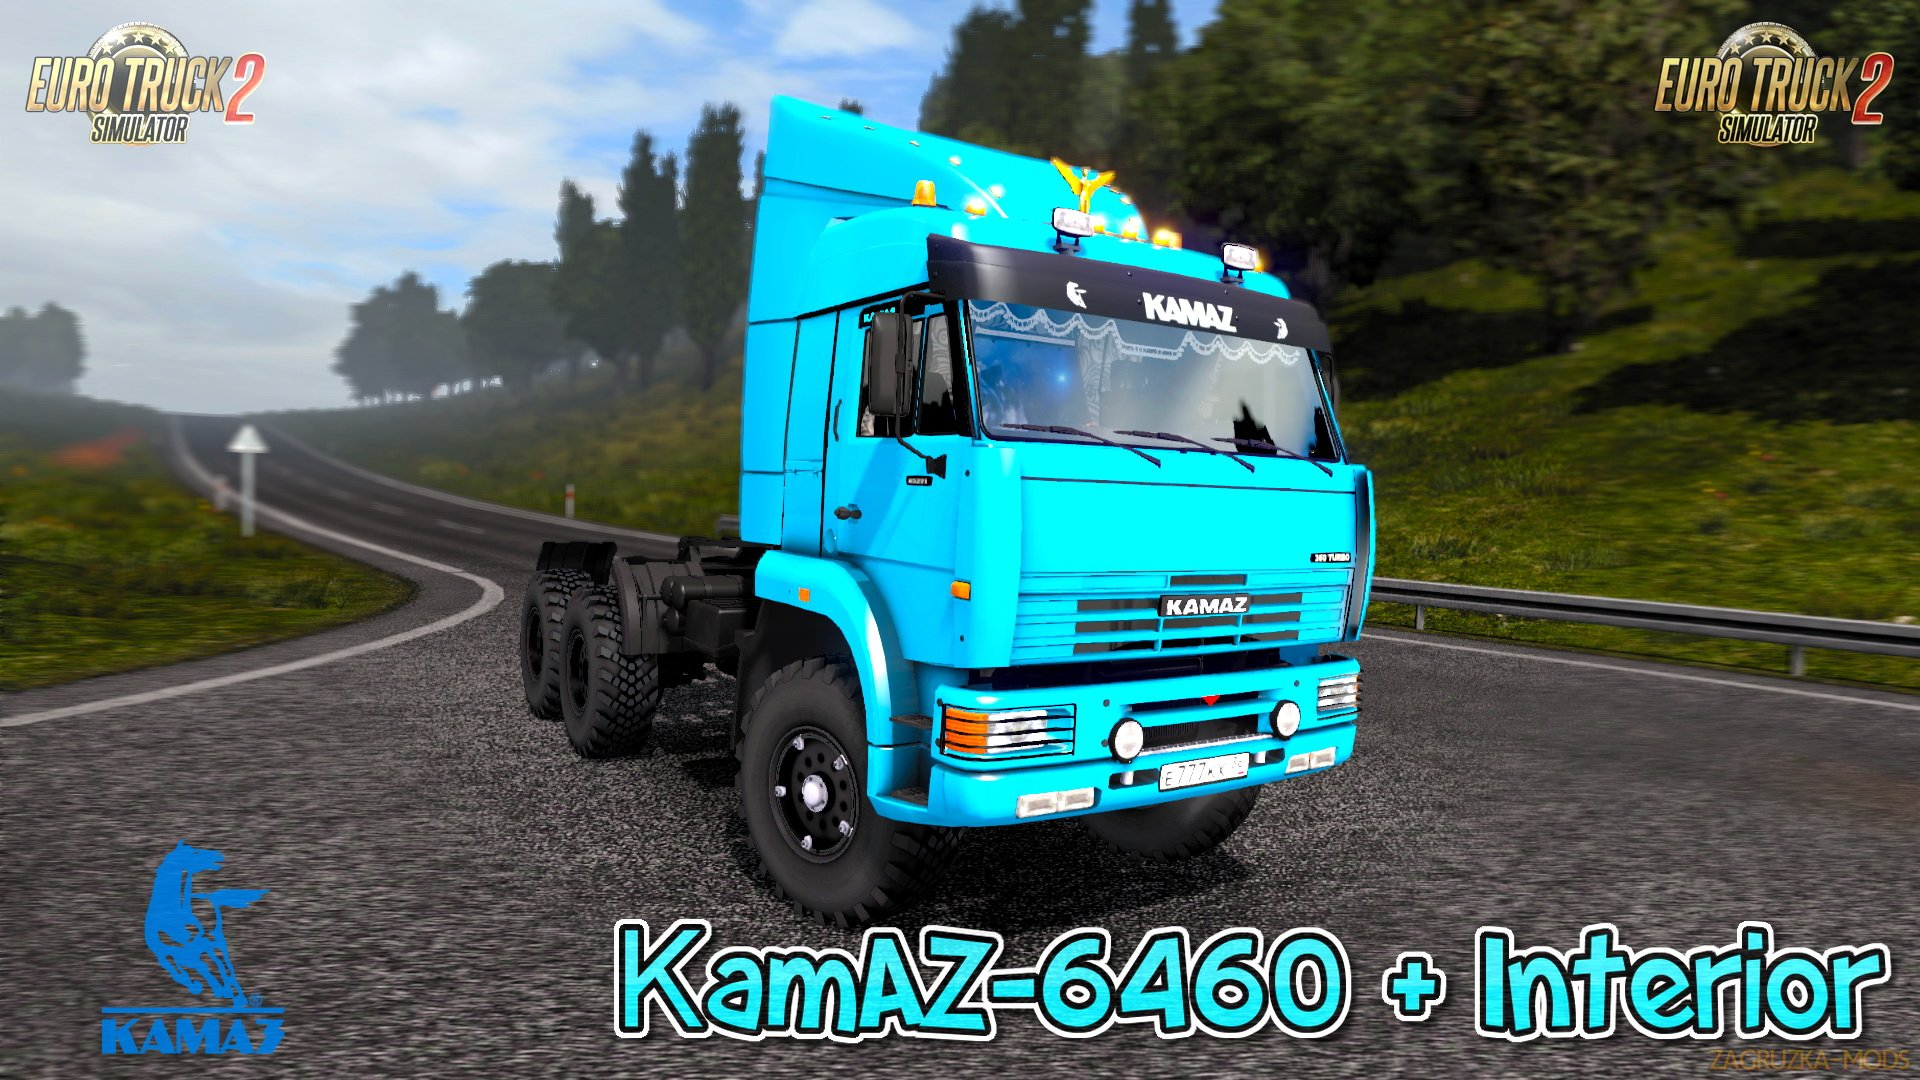 KamAZ 6460 + Interior v1.5 (1.28.x) for ETS 2